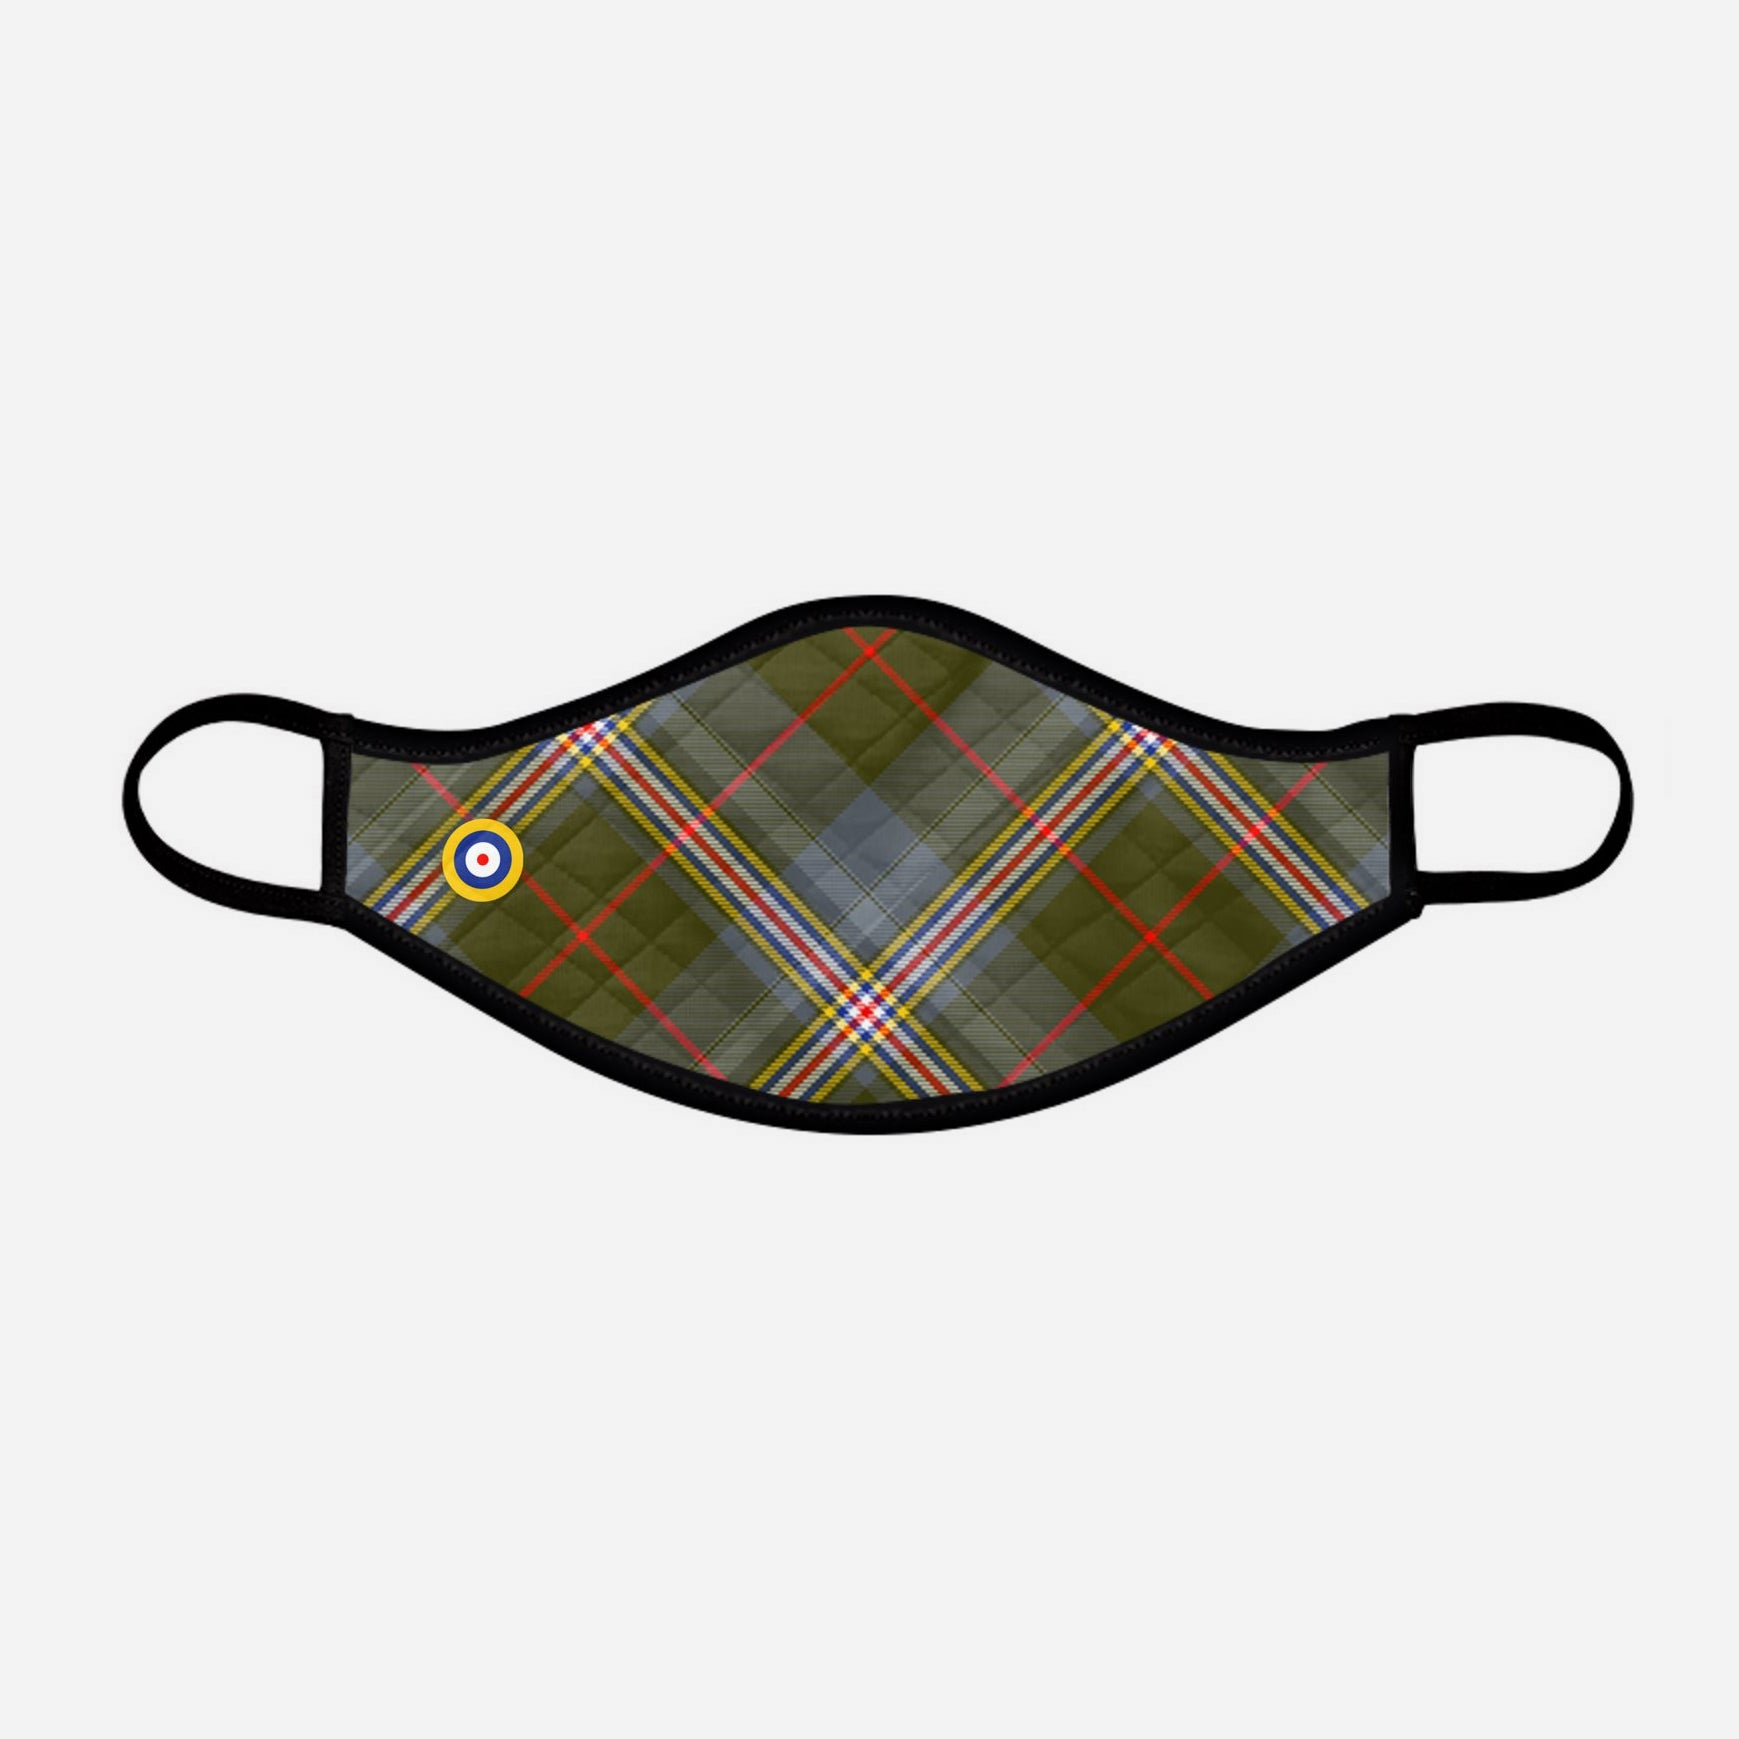 Red Lichtie Spitfire EP121 Montrose Air Station Heritage Centre Tartan custom printed face mask - Small with badge - by the Steven Patrick Sim Tartan Artisan - Stevie Tartan Guy Arbroath, Scotland with Nicola Sturgeon - mixed pack of 4 or 2